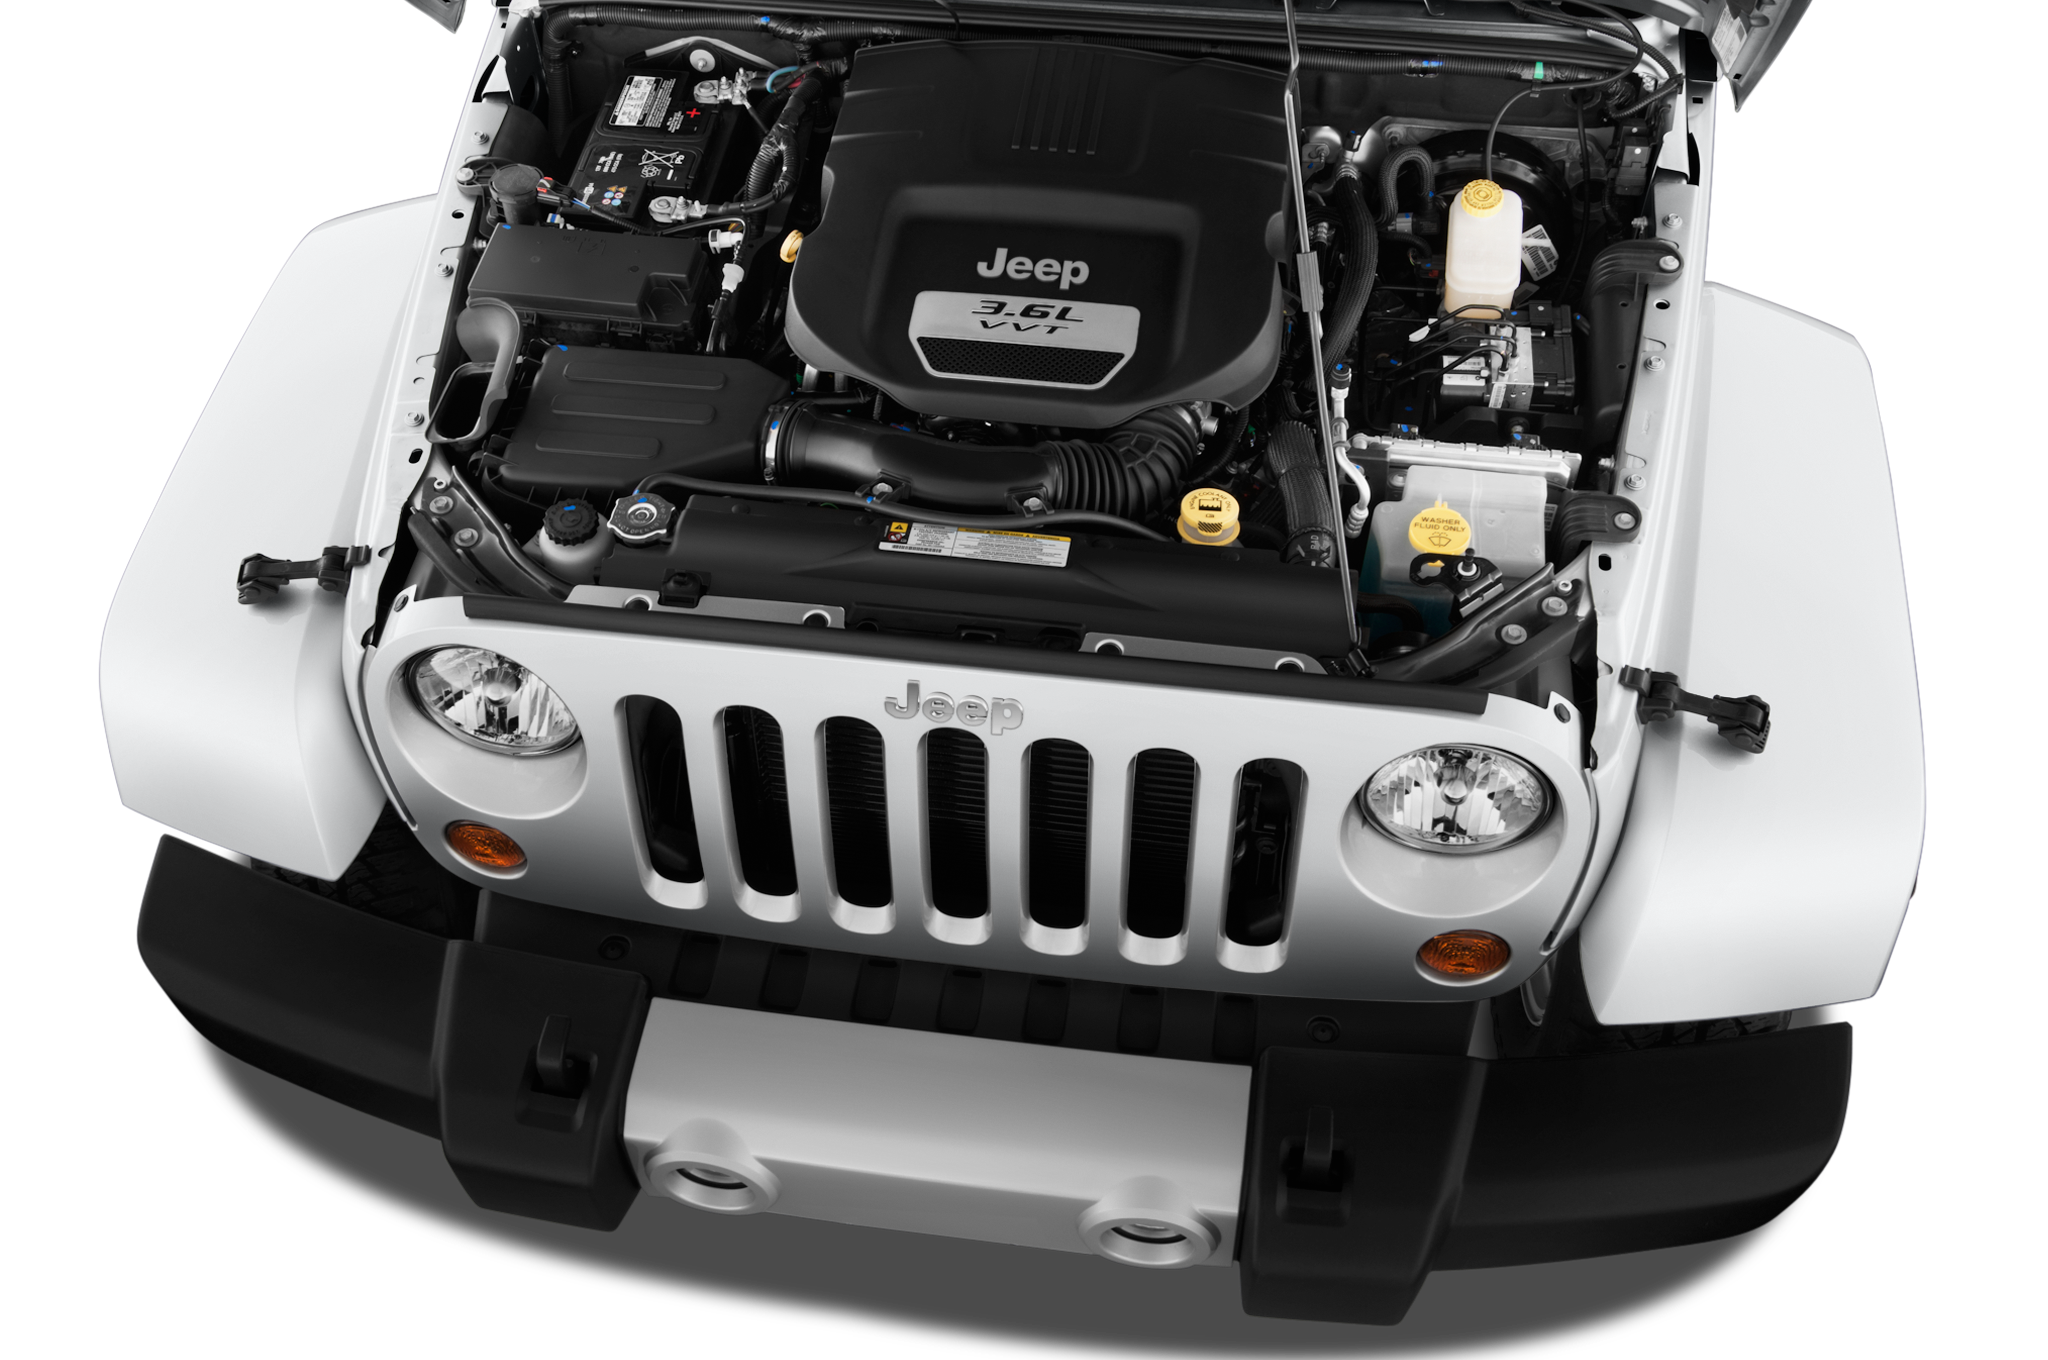 2014 Jeep Engine Diagram | Wiring Library